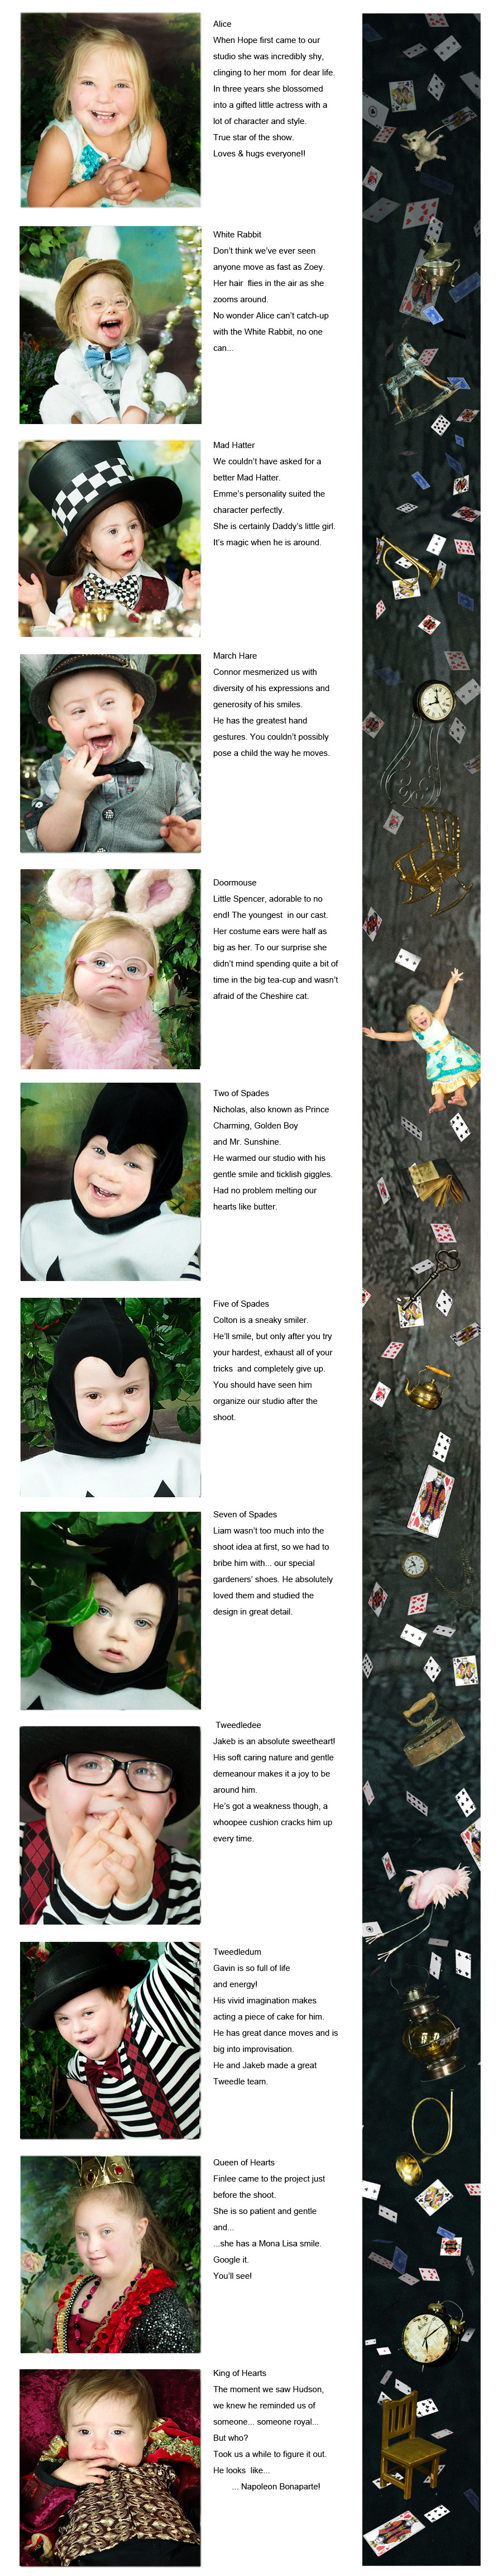 alice-in-wonderland-characters-free-lense-photo.jpg